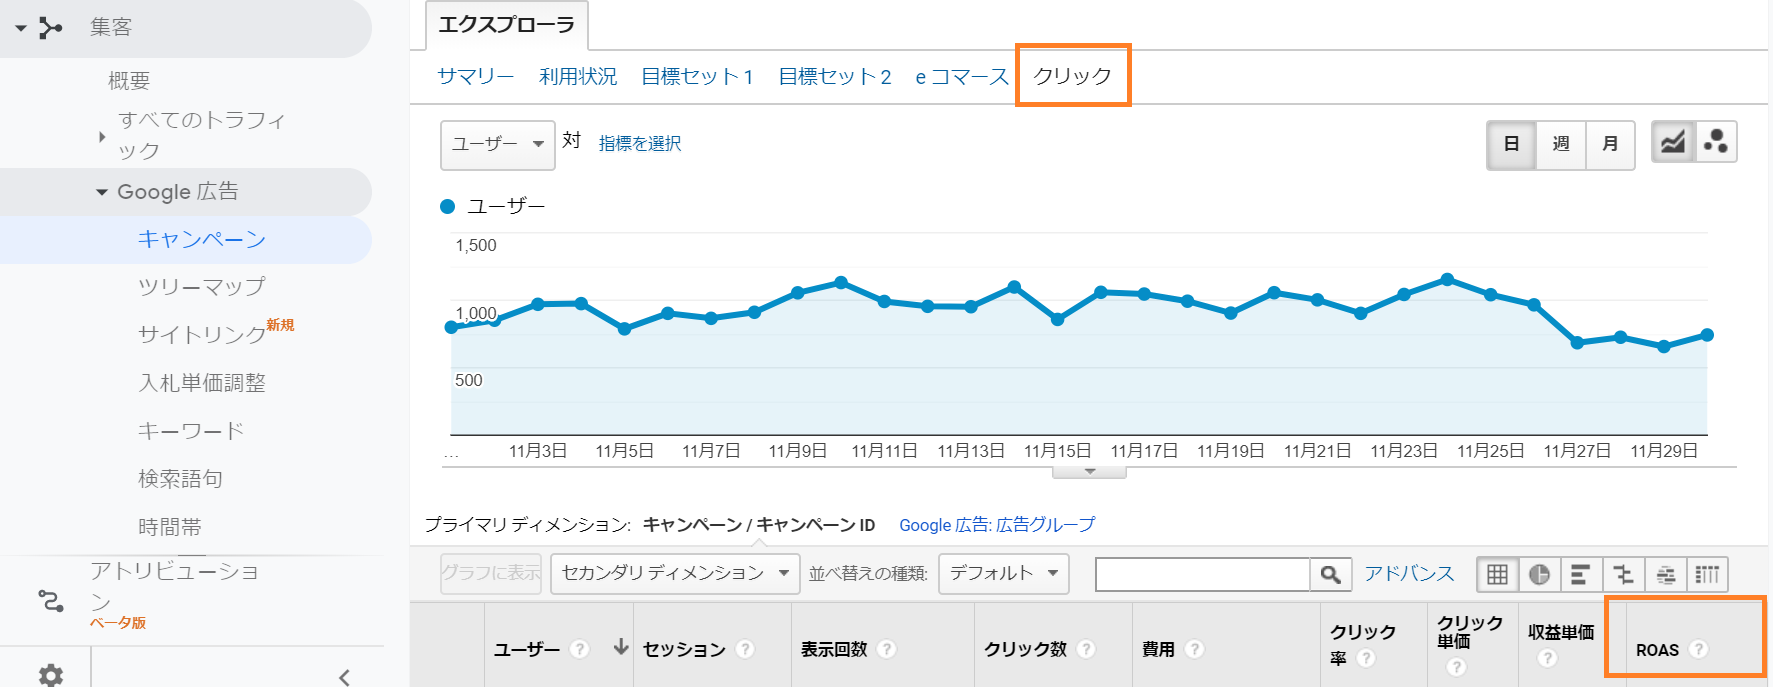 google-analytics-roas-by-click-explorer-ads-report.png